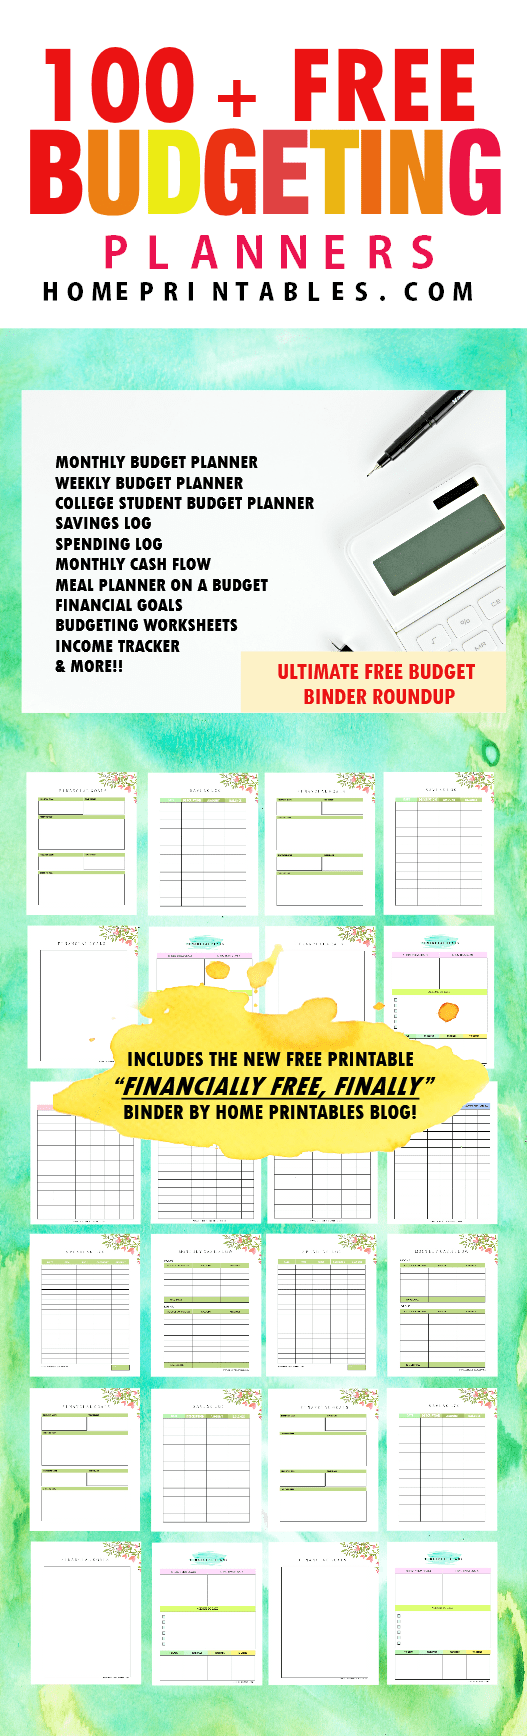 image regarding Free Printable Budget Binder Worksheets named 100+ No cost Spending plan Templates for Economic Good results! - Household